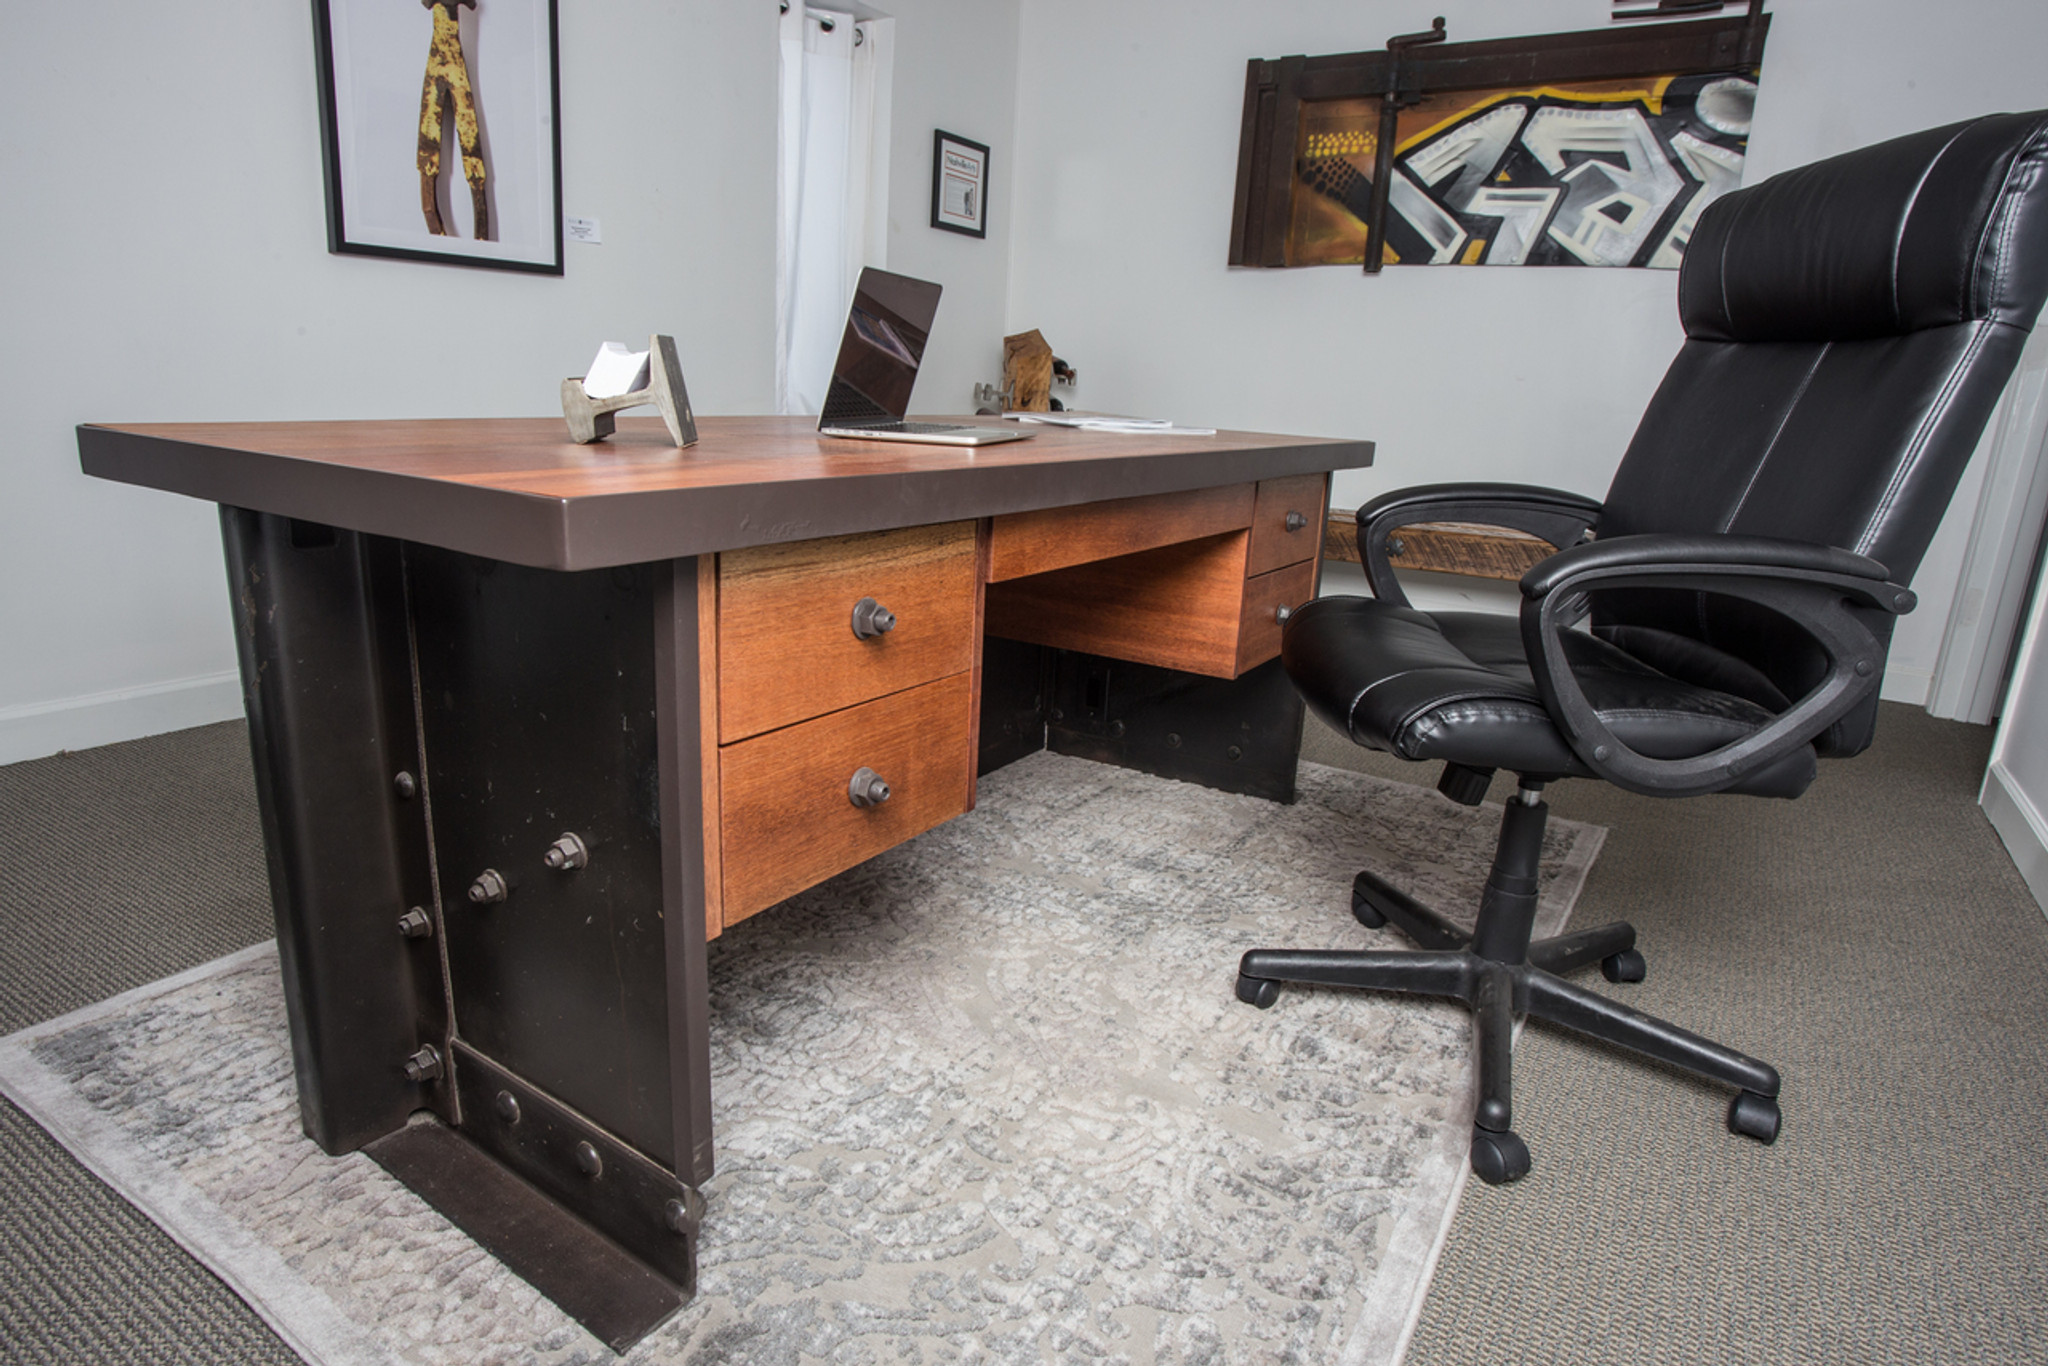 vintage modern decor style desk from reclaimed salvaged railroad railcar with drawers